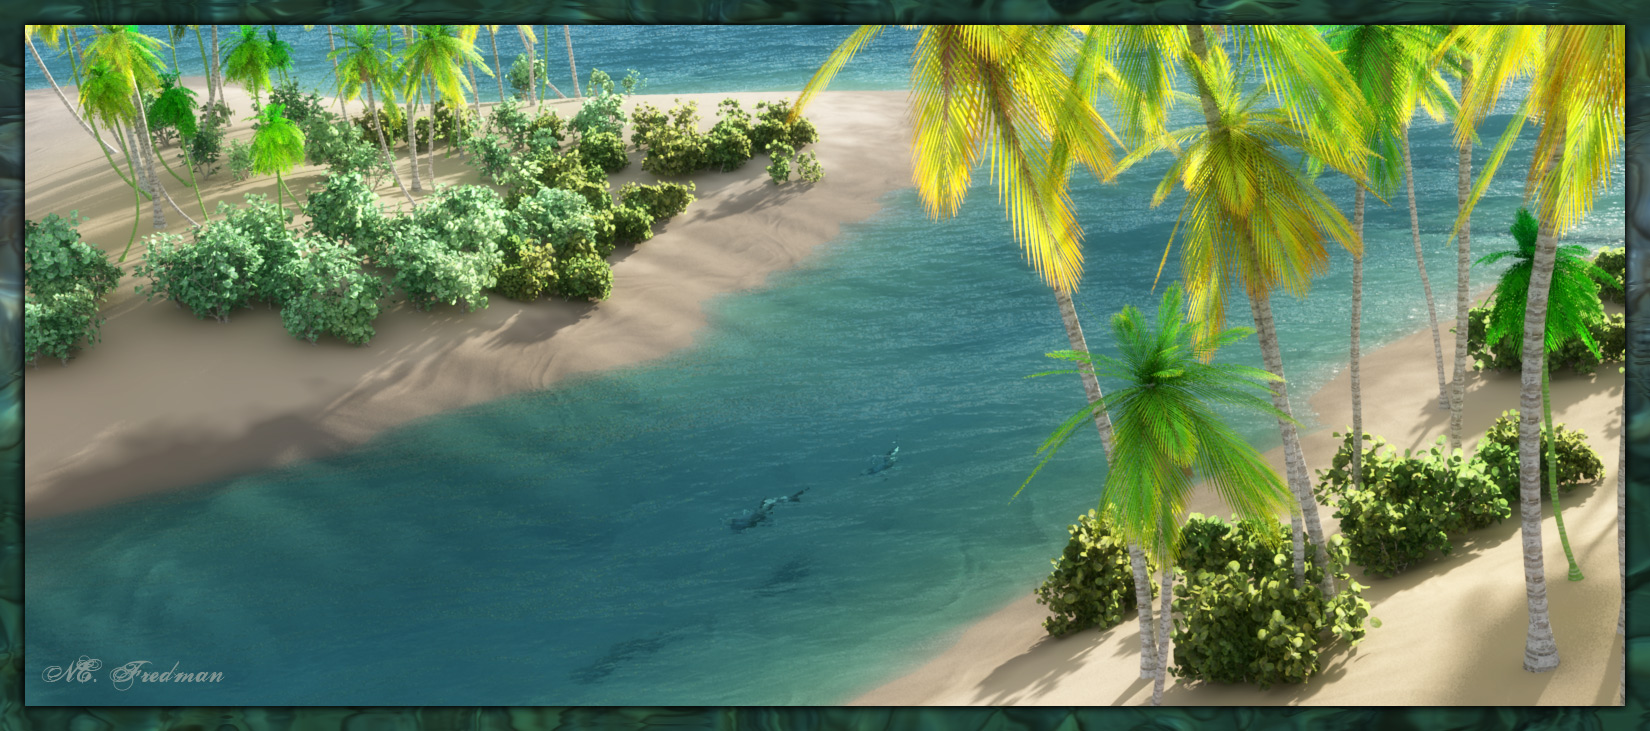 Tropic Idyll: Azure Shores